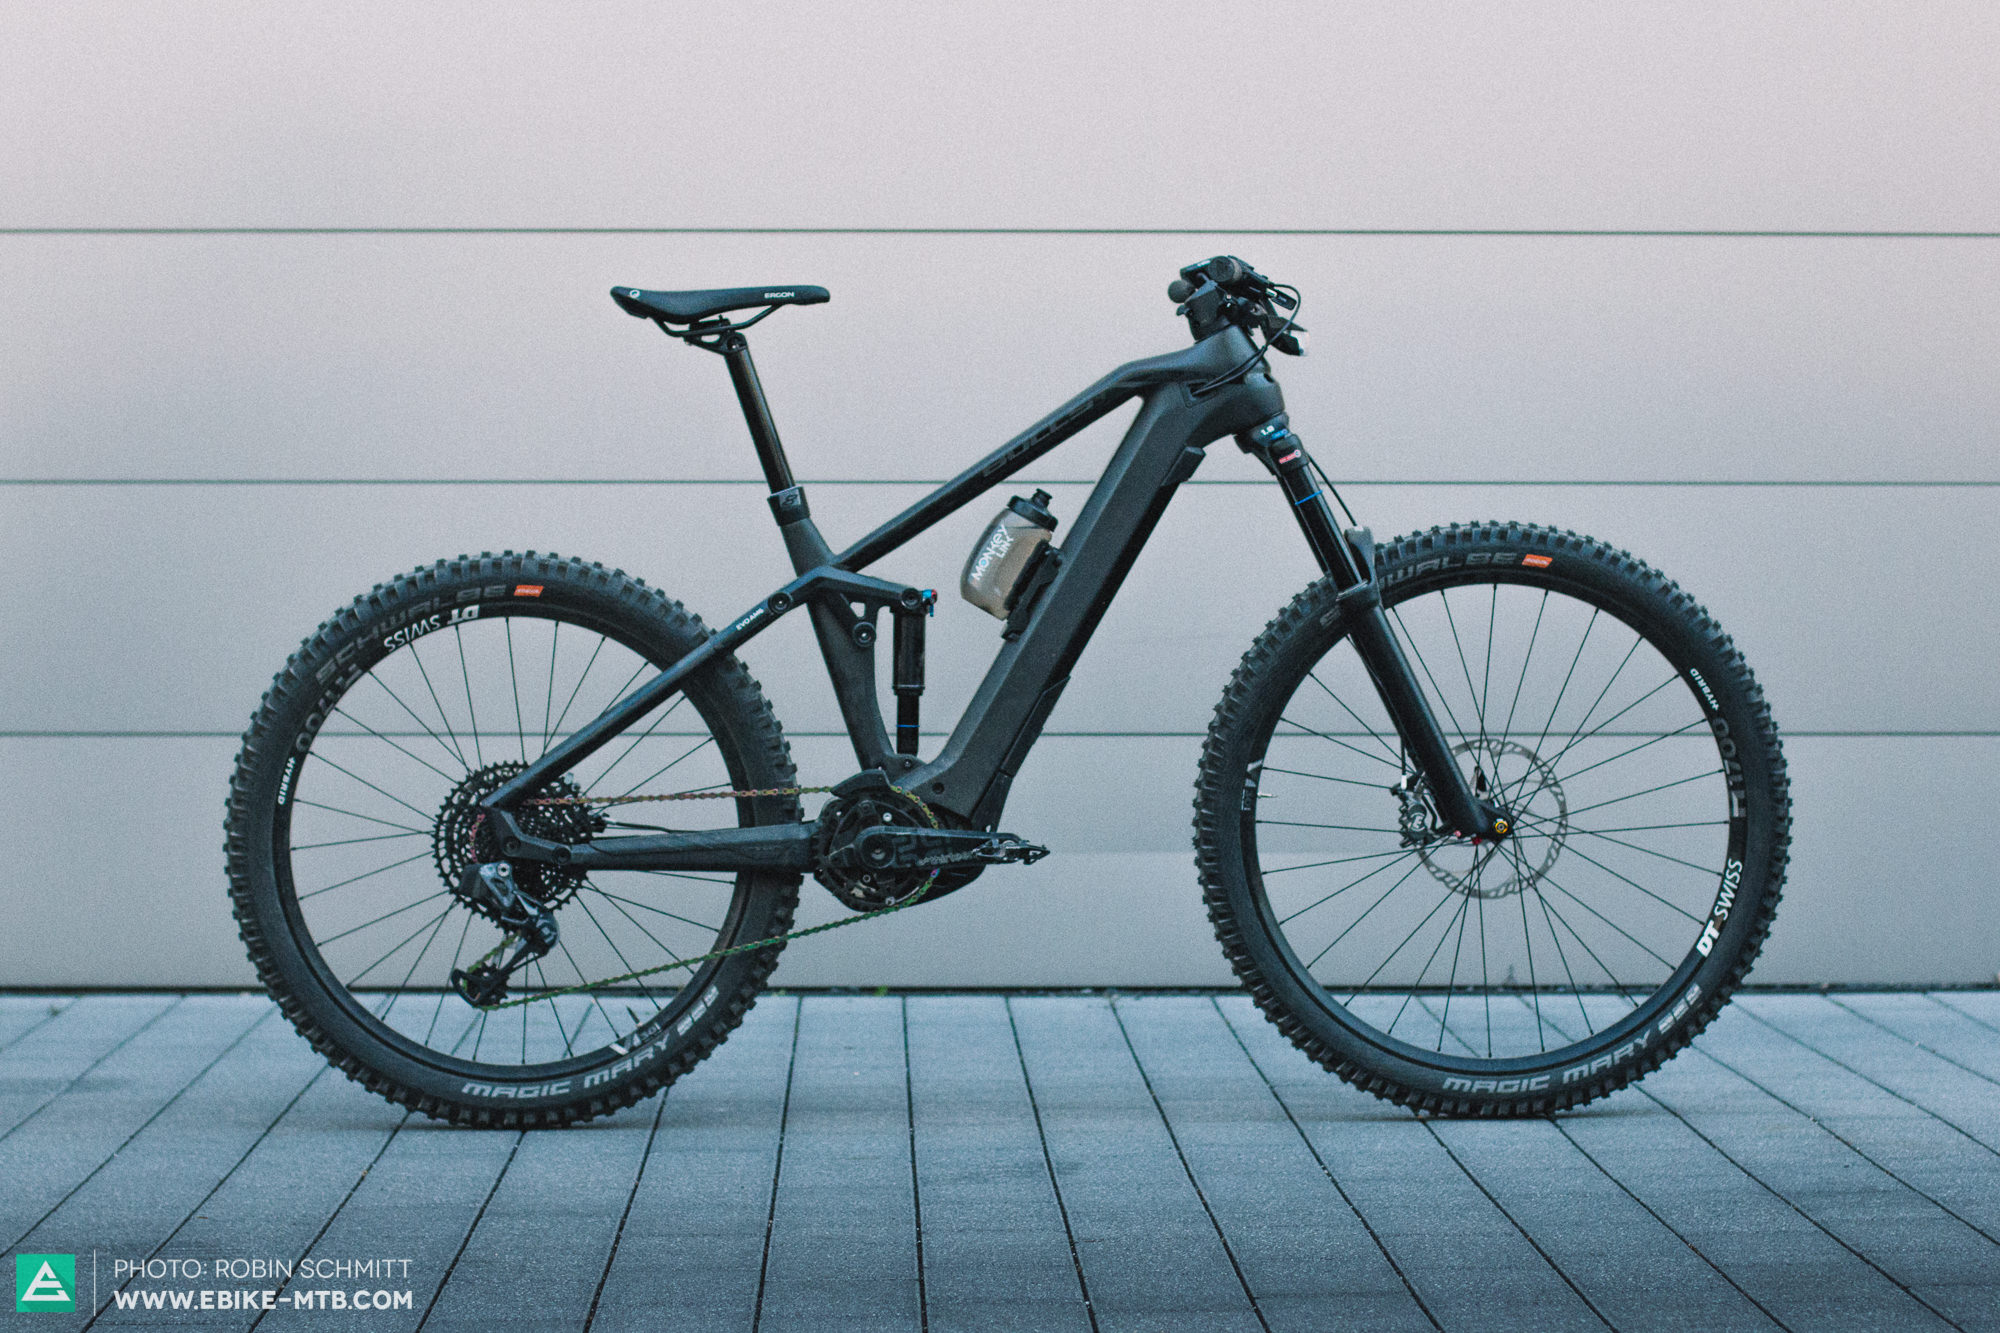 Best Entry Level Mountain Bike 2020 Exclusive First Ride Review: the new BULLS Sonic EVO AM 6 Carbon